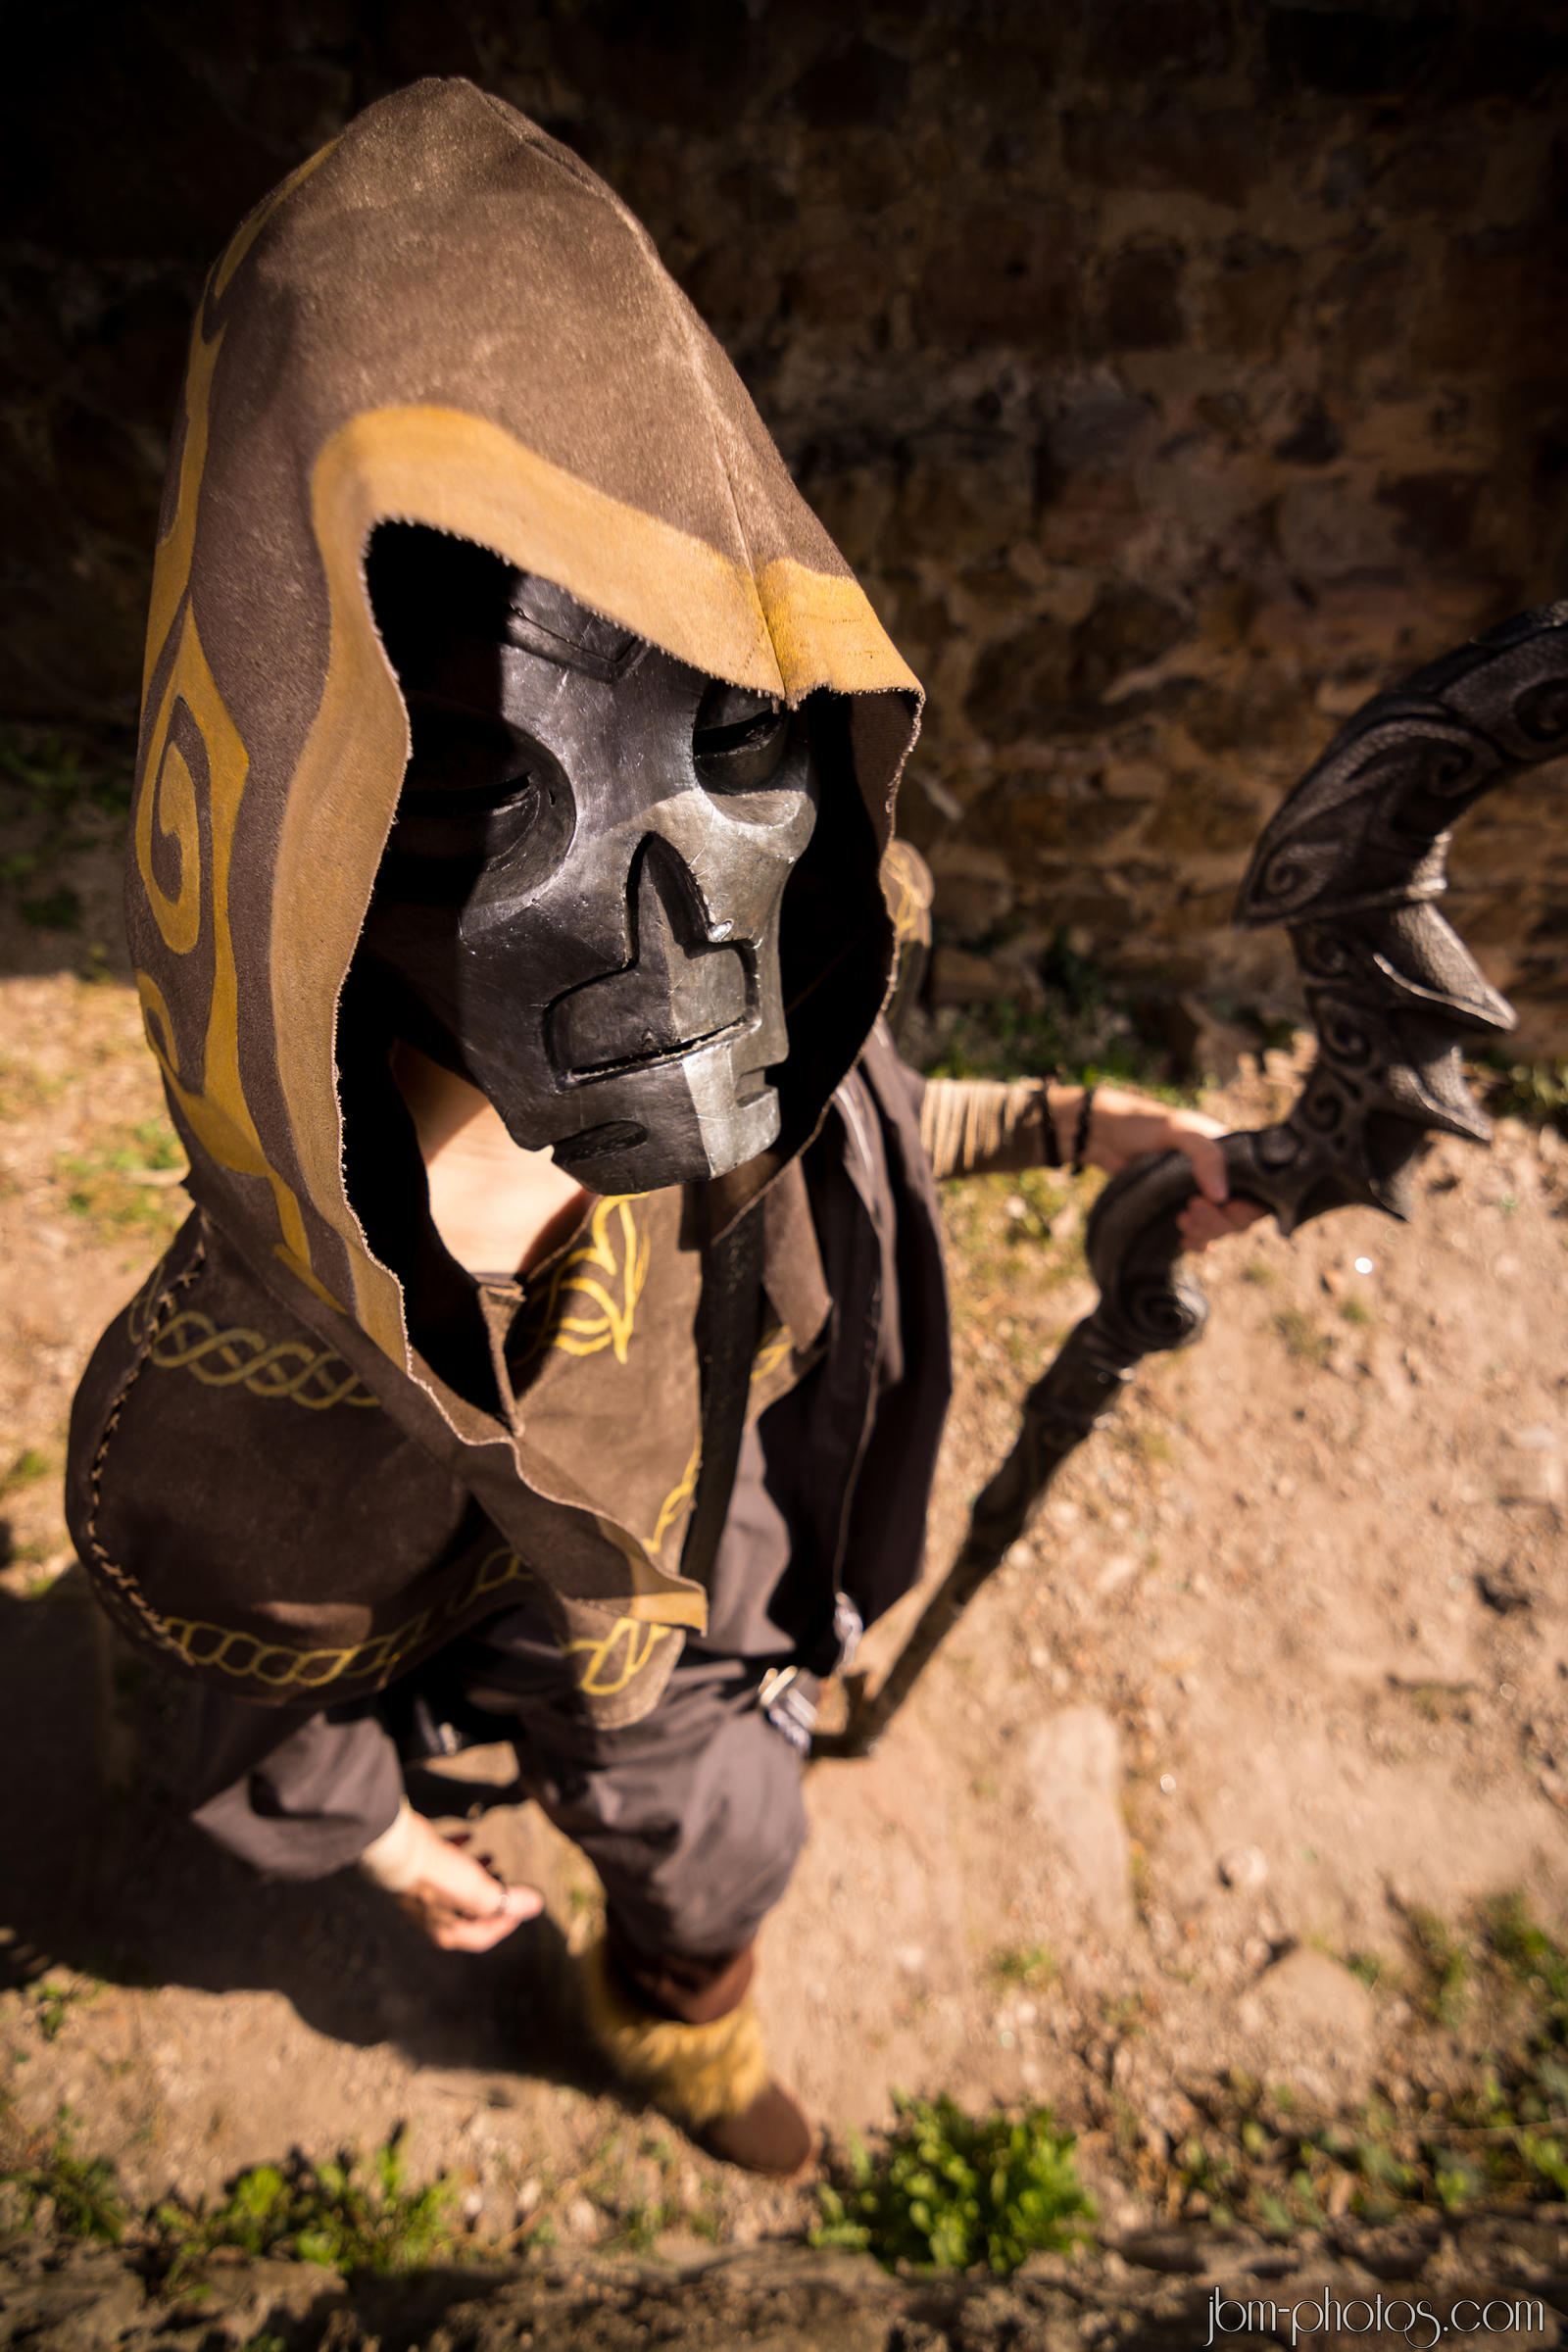 Skyrim Cosplay - Dragon Priest by BlackOwlStudio on DeviantArt